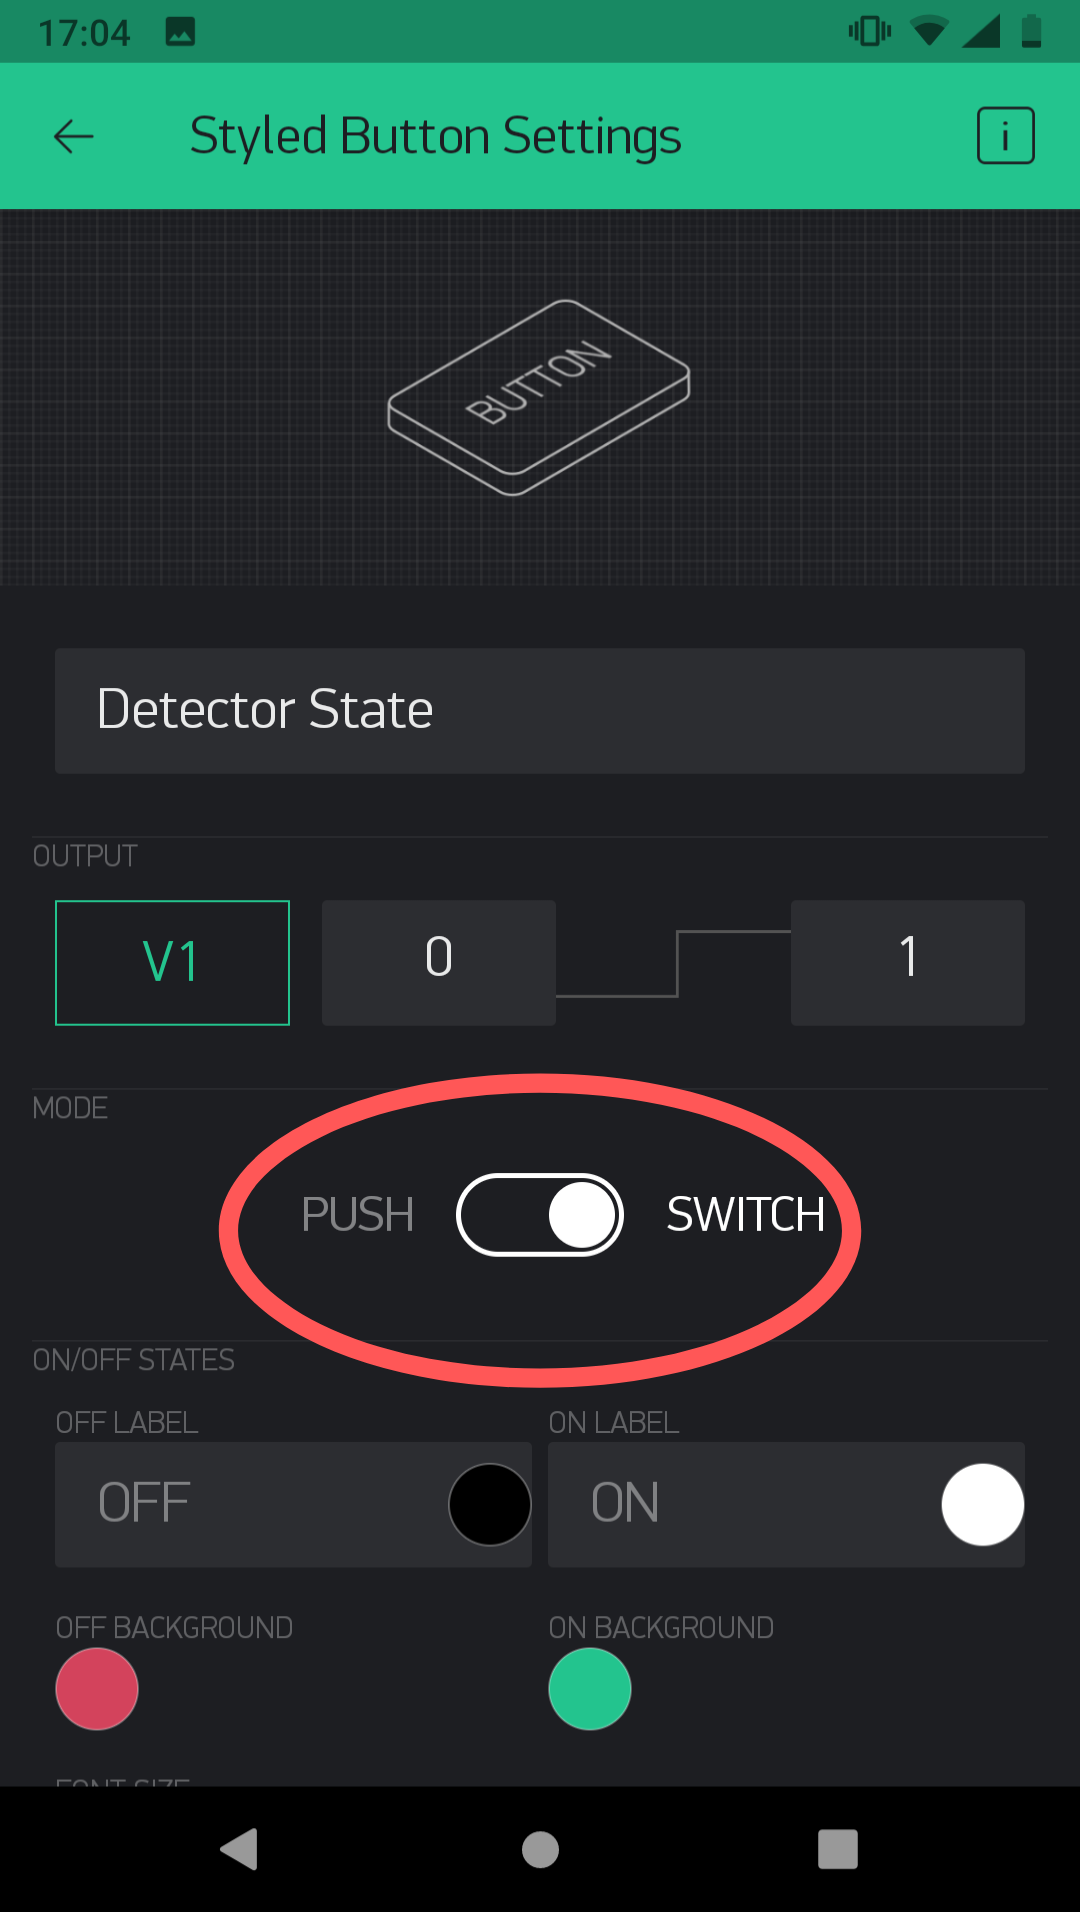 Settings of styled button in Blynk App